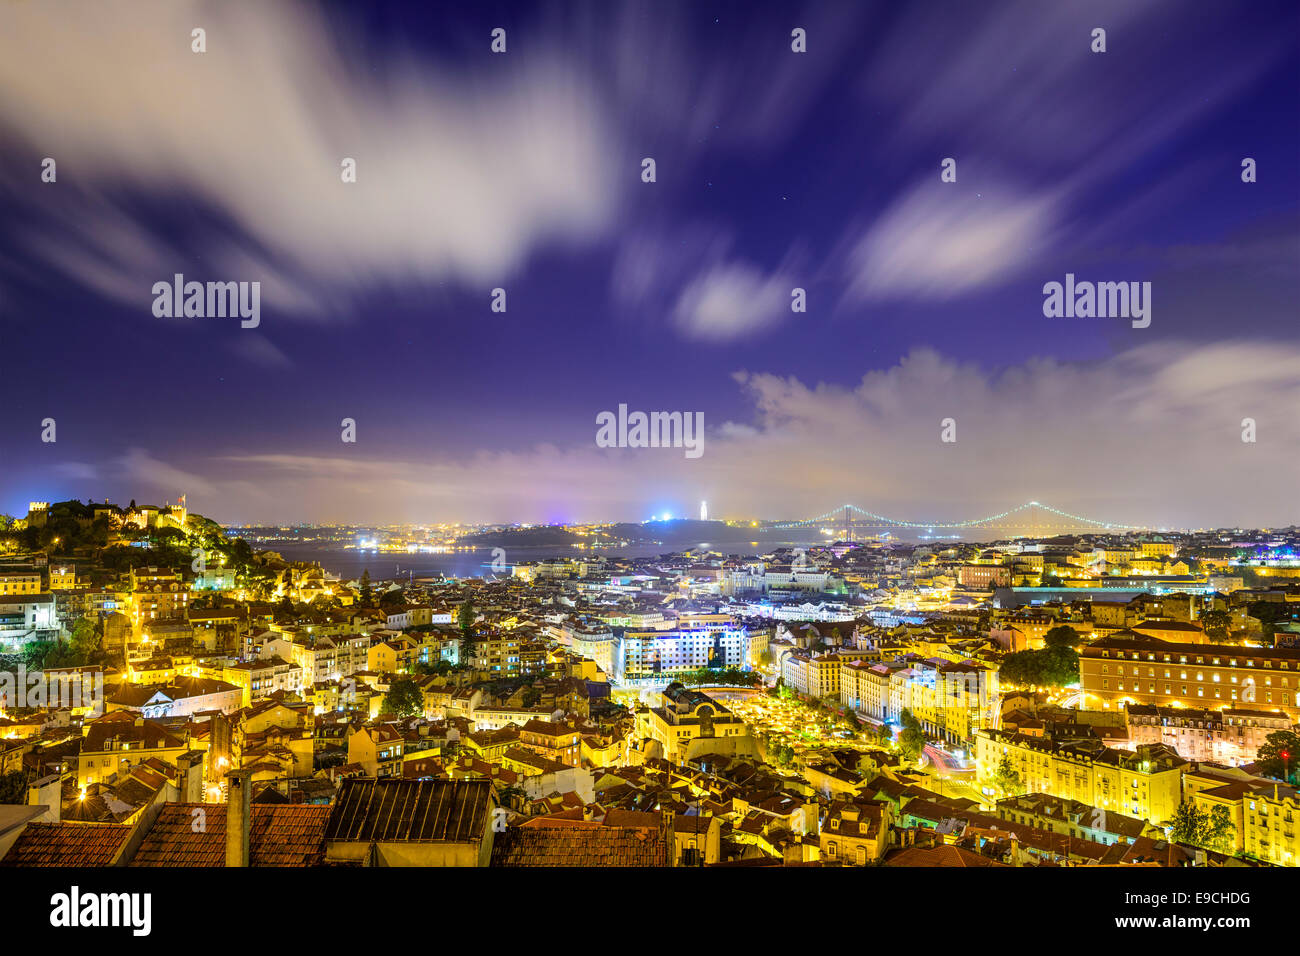 Lisbonne, Portugal skyline at night. Photo Stock